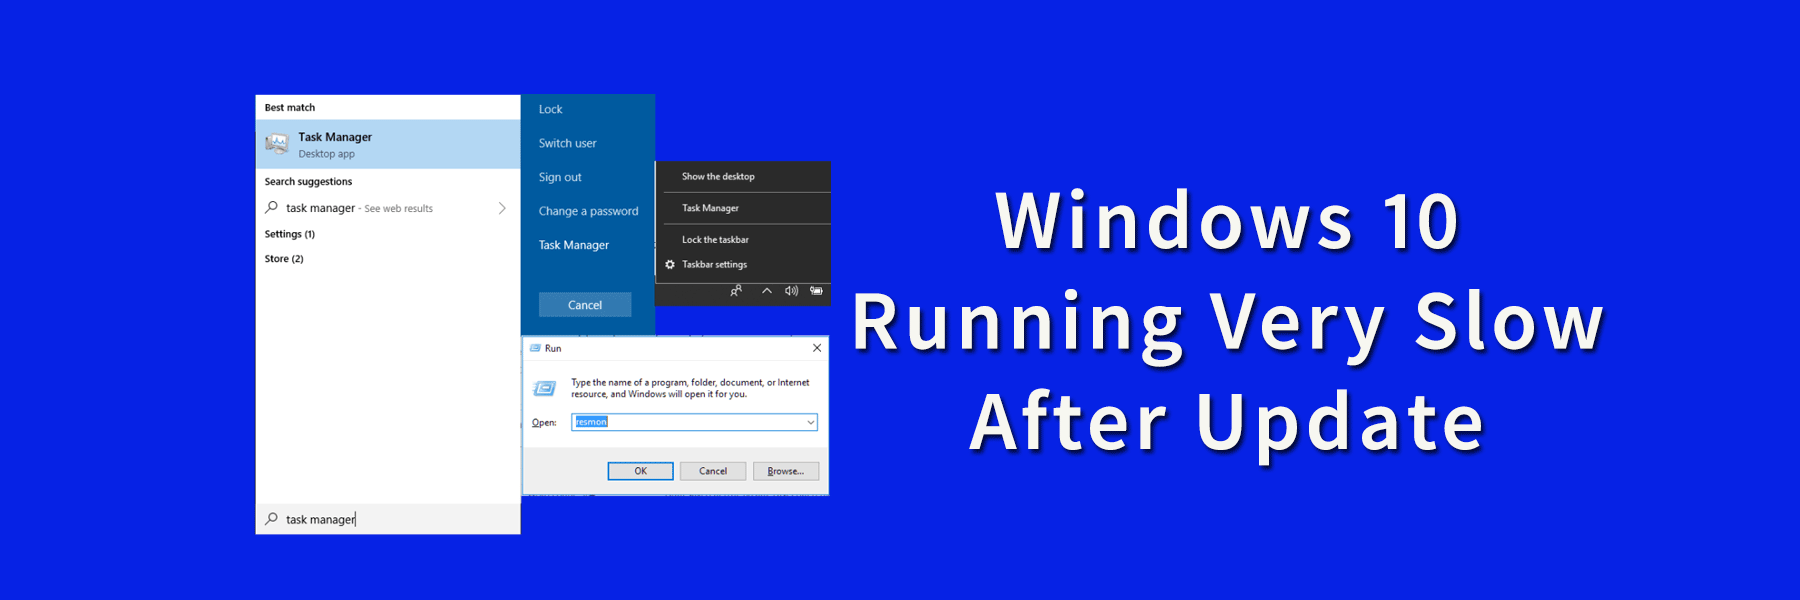 Fix Windows 10 Running Very Slow After Update